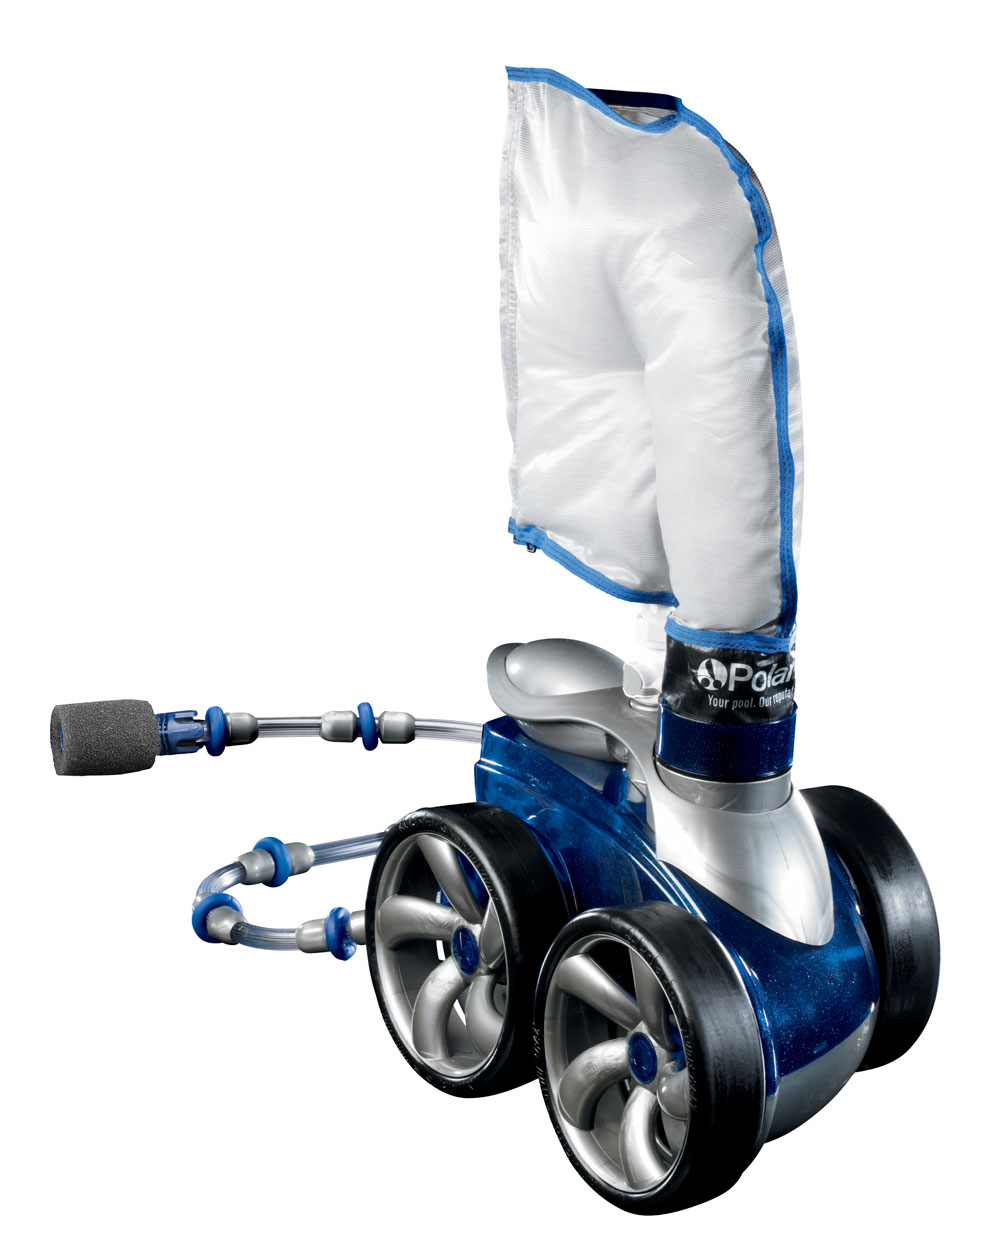 Polaris Tailsweep Pro Pool Cleaner Accessory 1 Swimming Pool Cleaner Worldwide Polaris